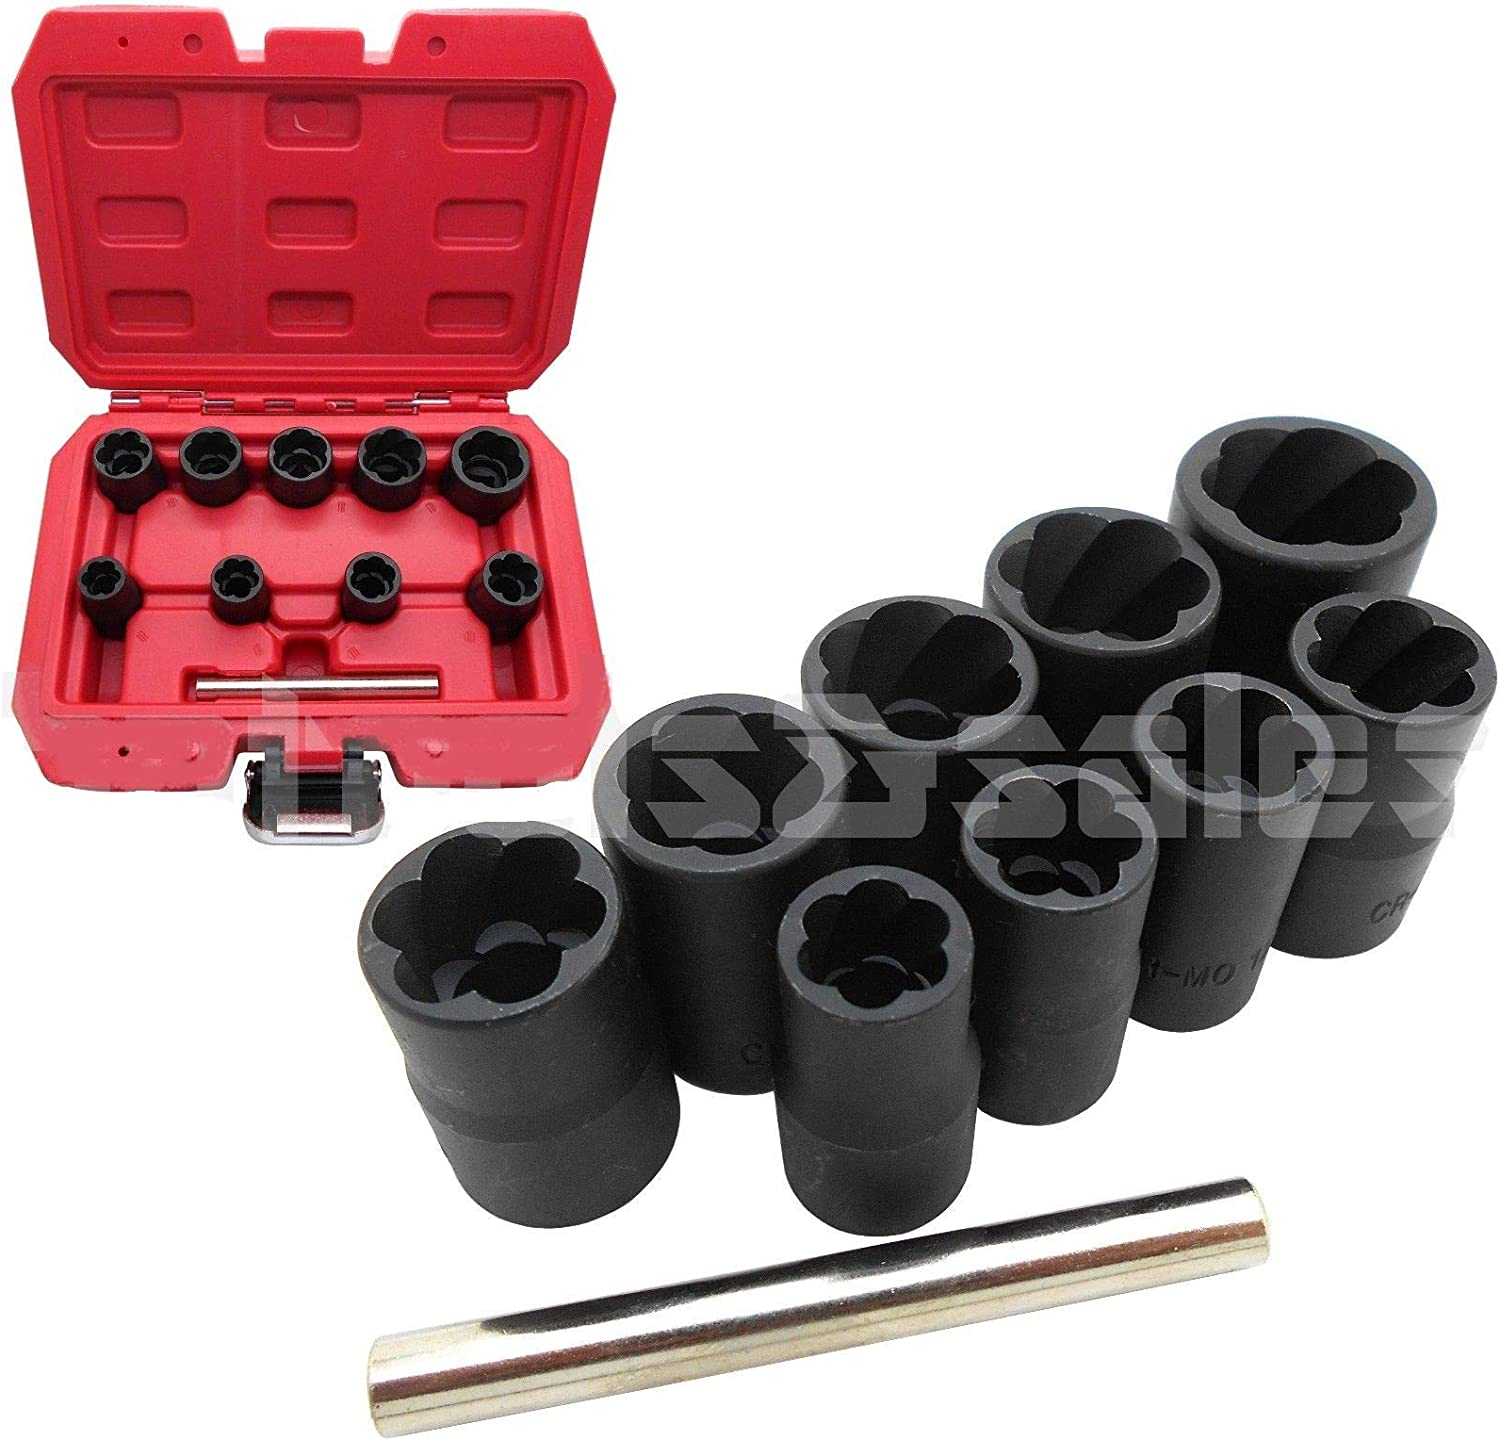 10Pc Grip N Twist Sockets Locking Wheel Nut Remover Damaged Rounded Bolts